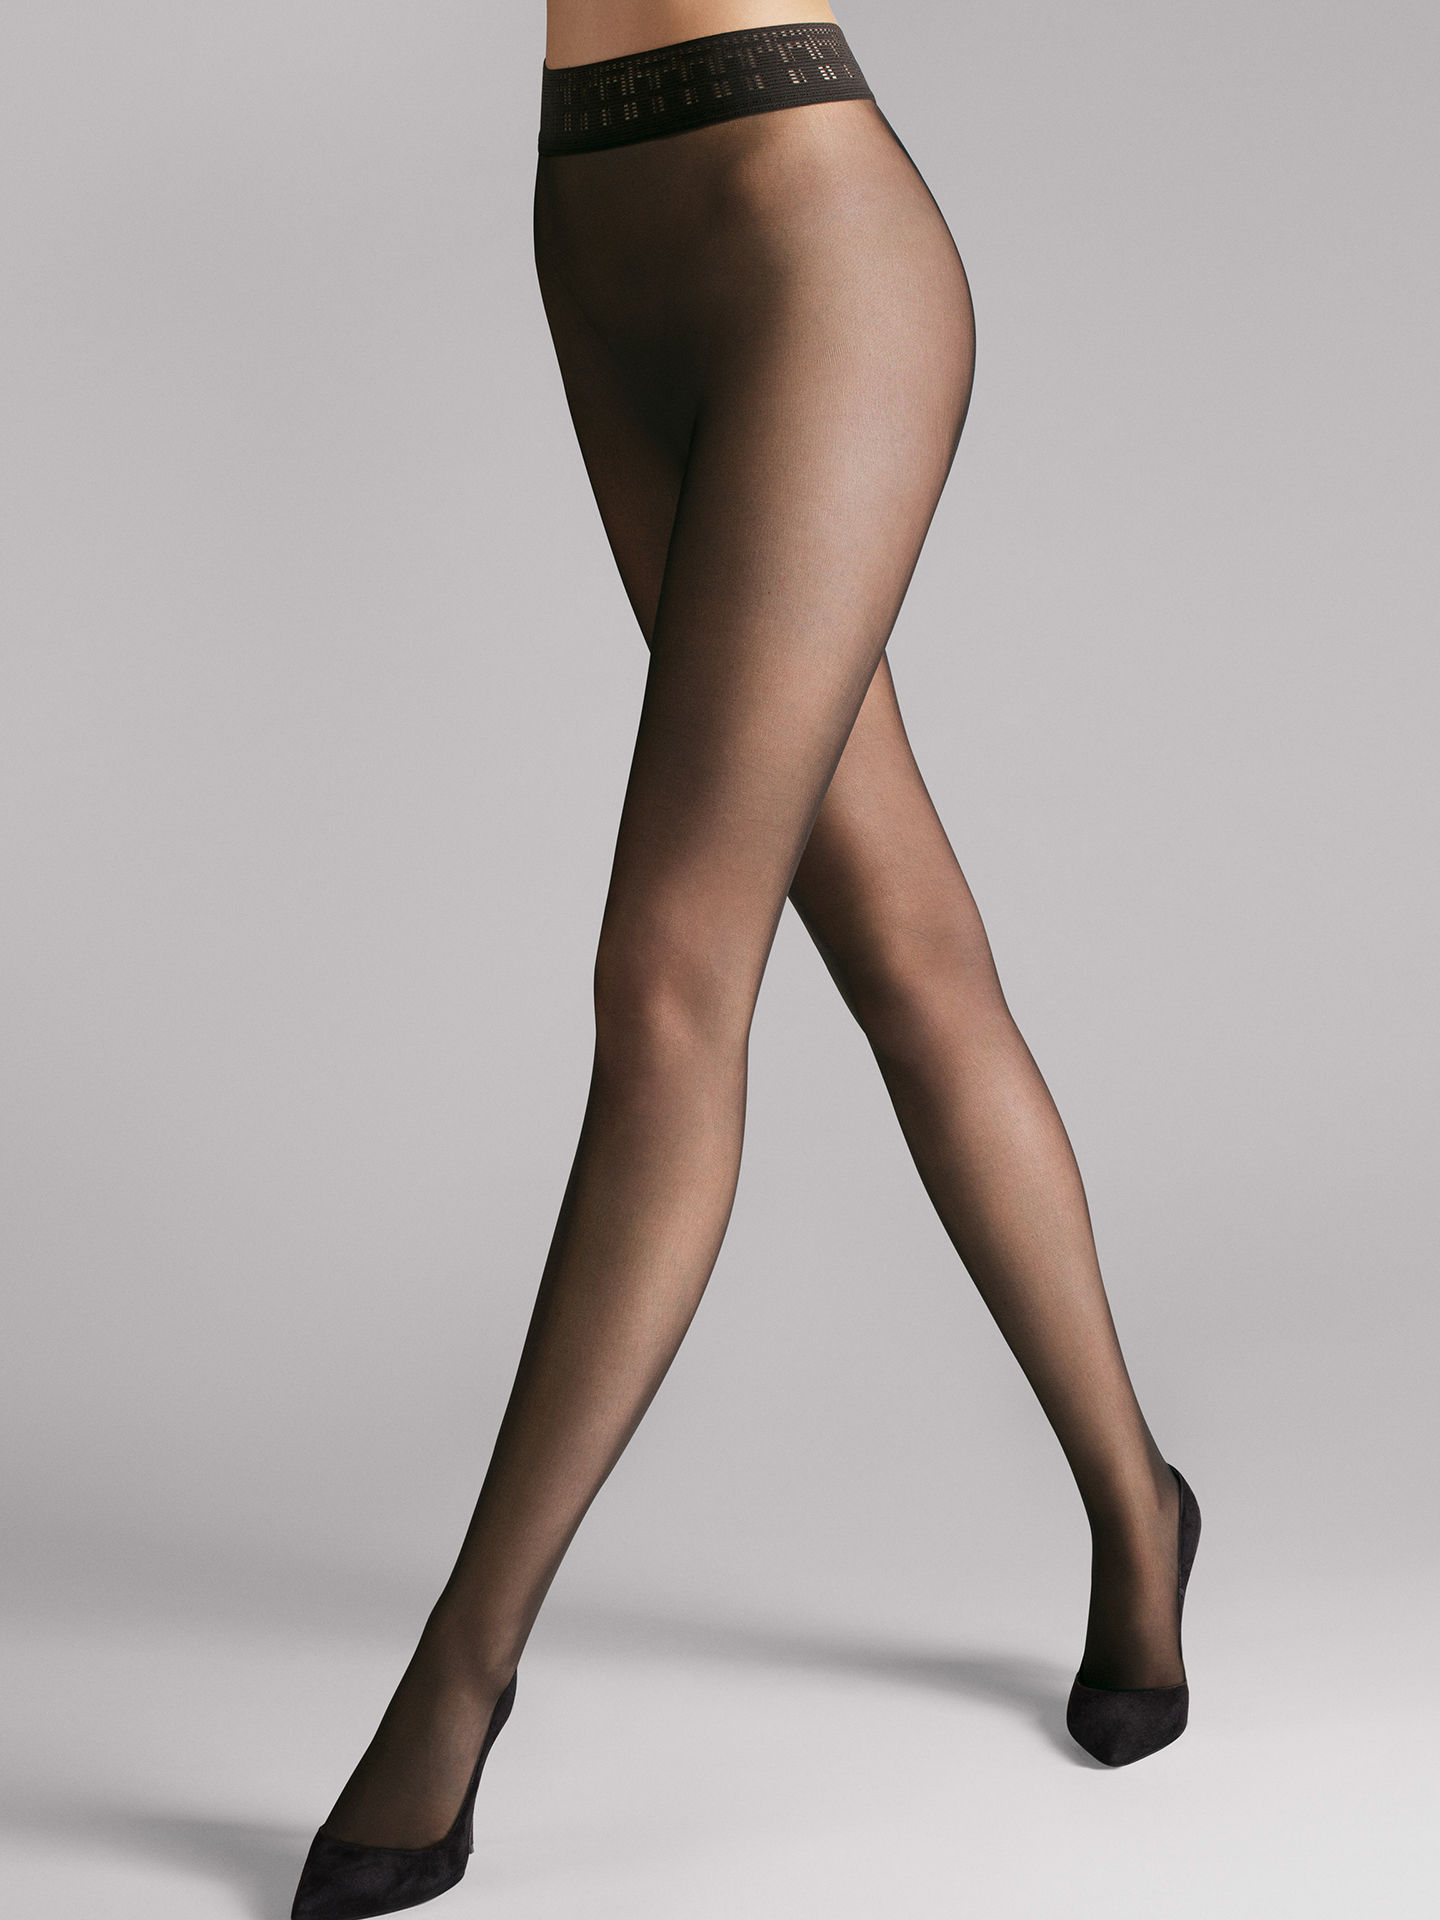 sex Wolford pantyhose